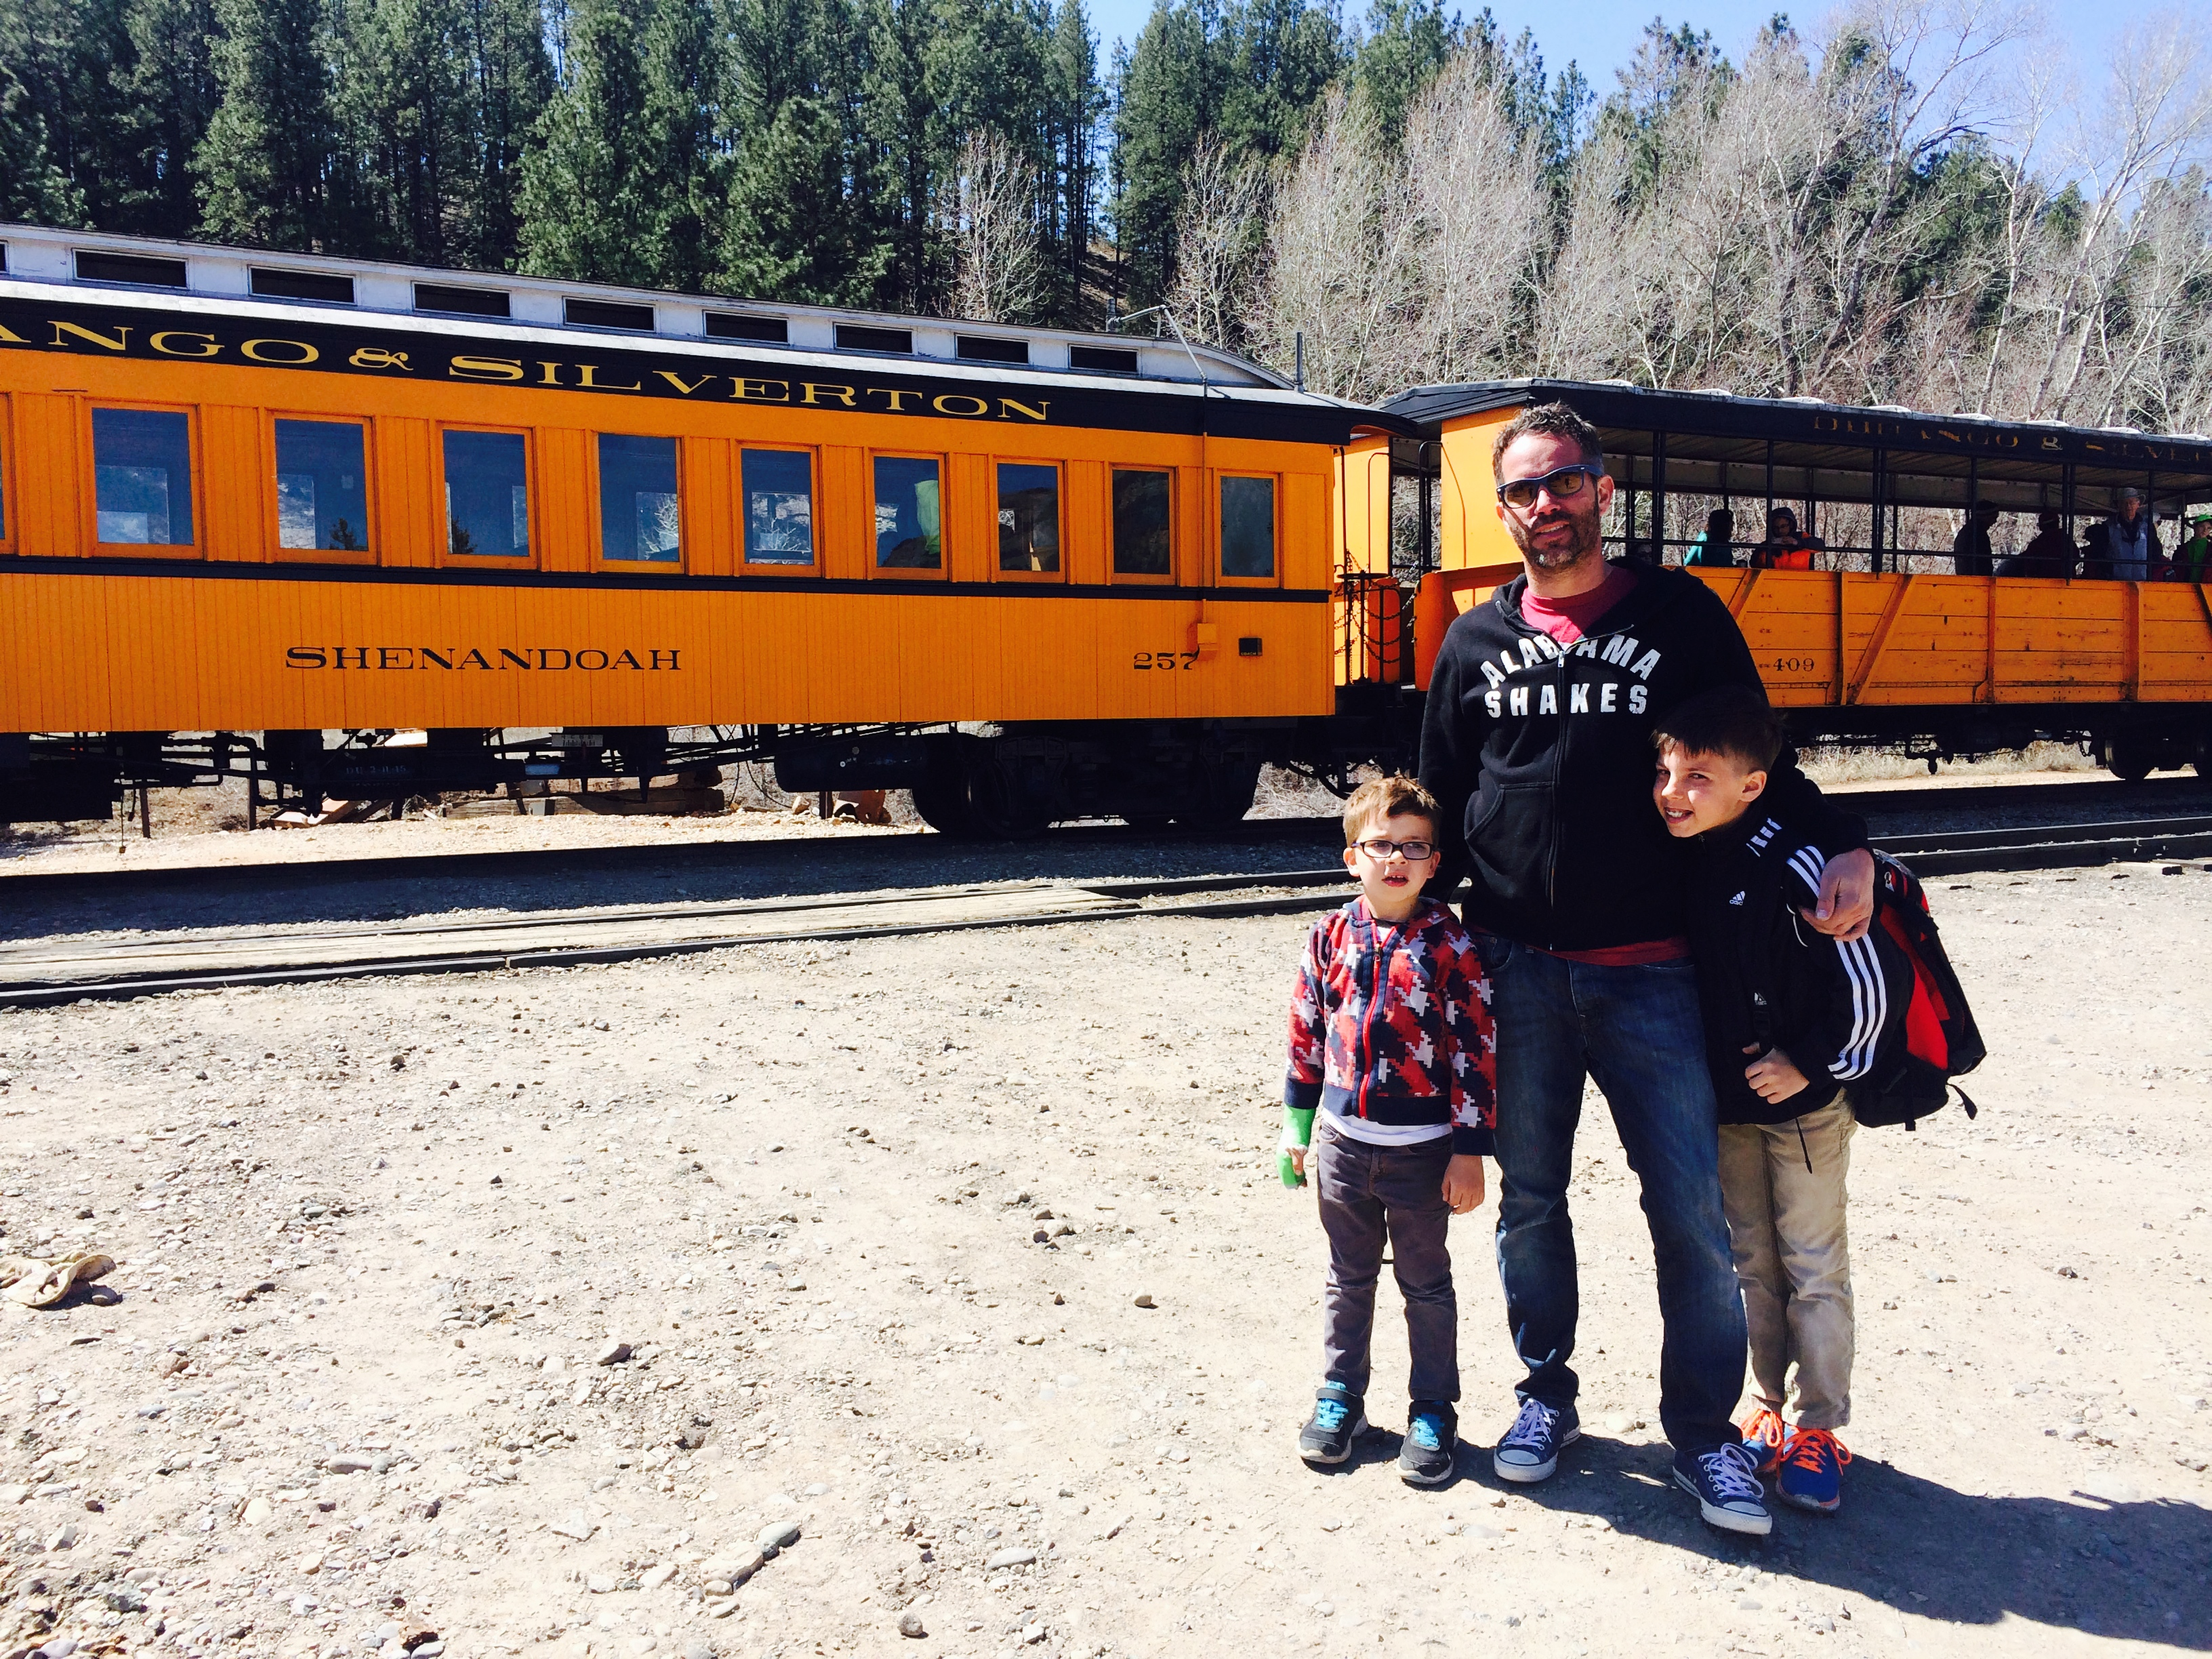 Alan Dayton and two of the Daytons' sons pose after disembarking the Silverton Train.  Somewhere outside of Durango, Colorado. April 2015 | Photo by Kat Dayton, St. George News